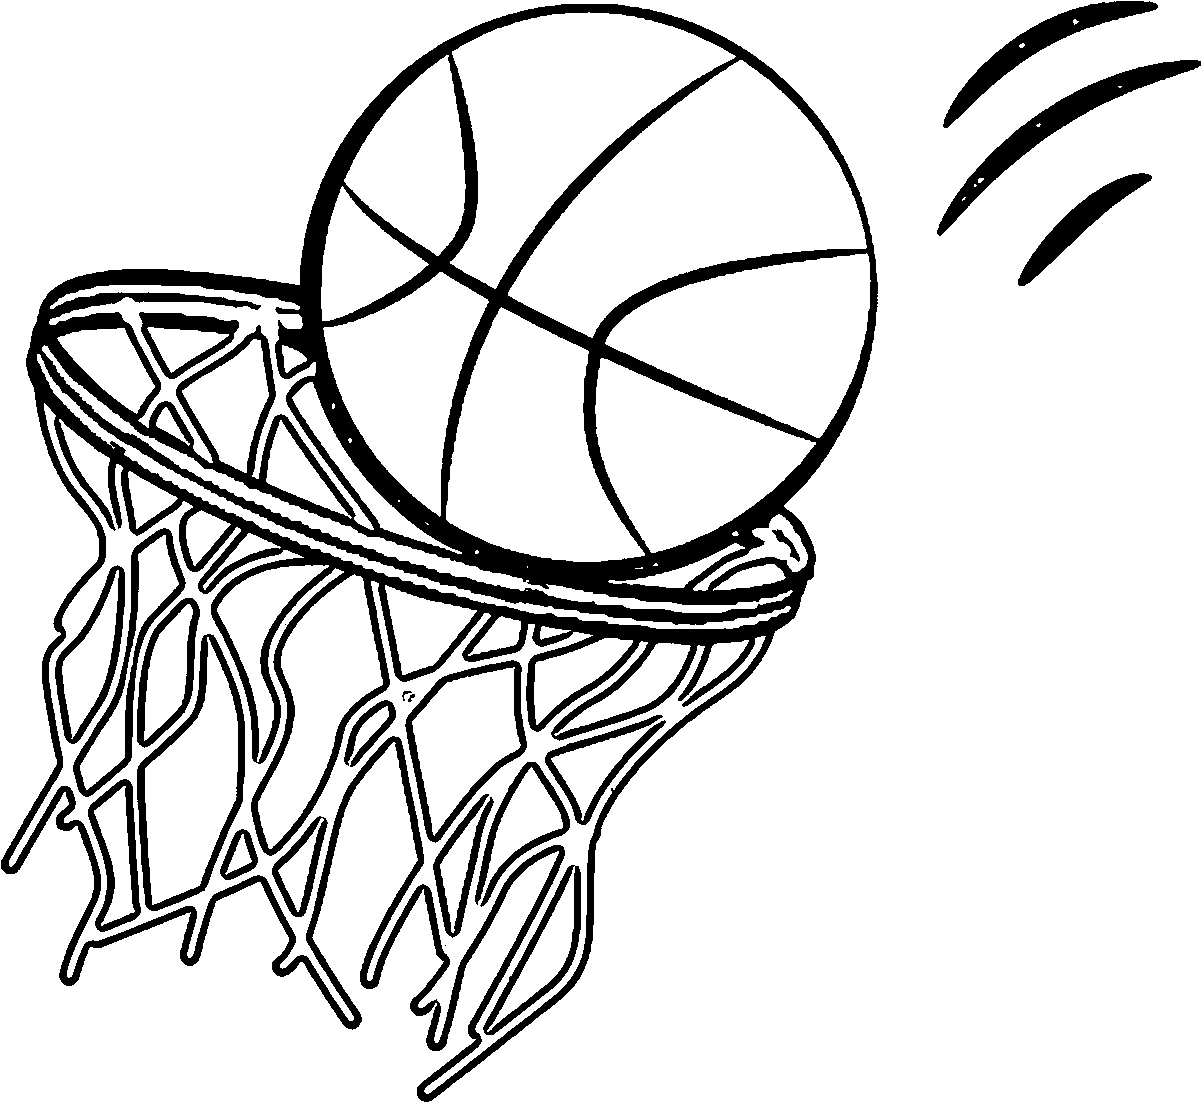 1203x1103 Beautiful Basketball Coloring Pages Logo And Design Ideas